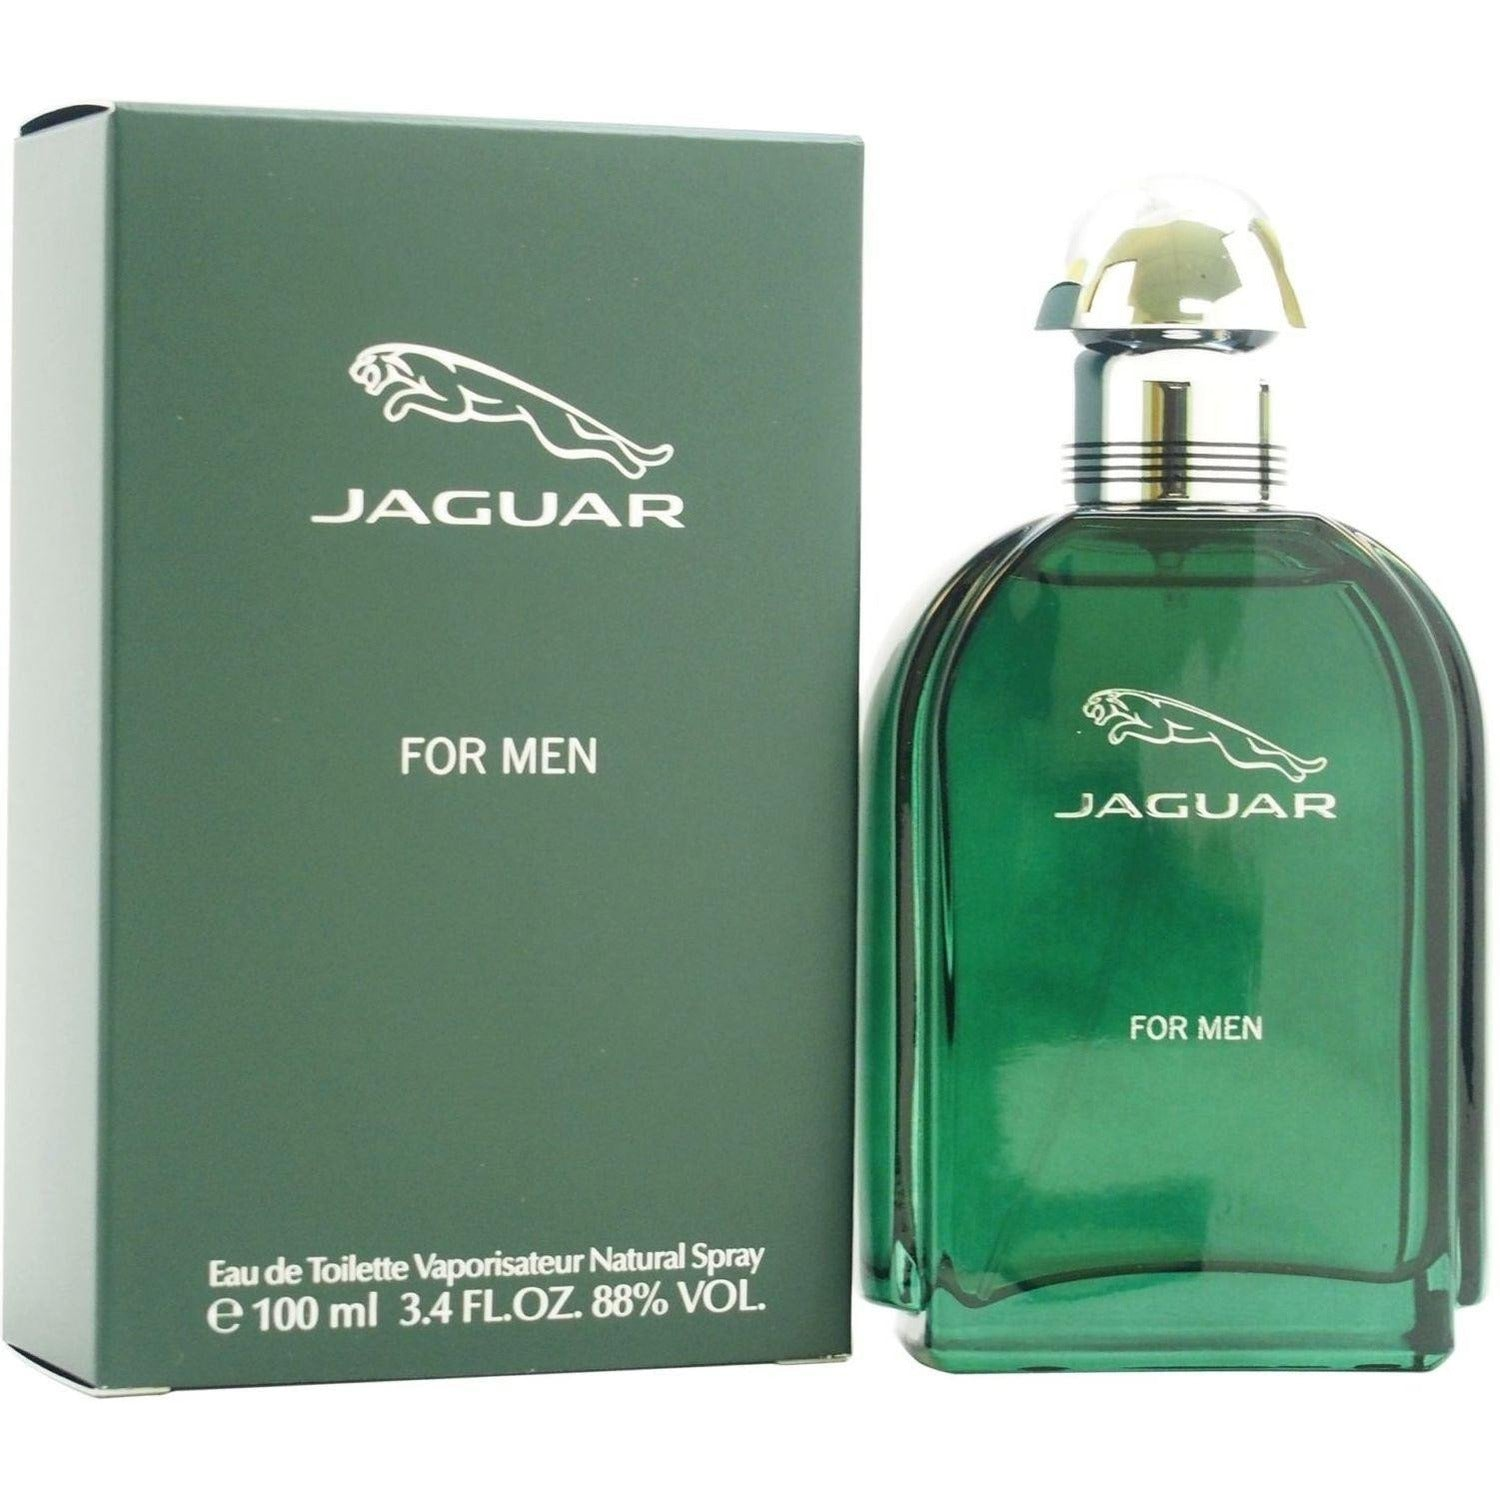 jaguar green by jaguar cologne 3 4 oz edt spray for men. Black Bedroom Furniture Sets. Home Design Ideas